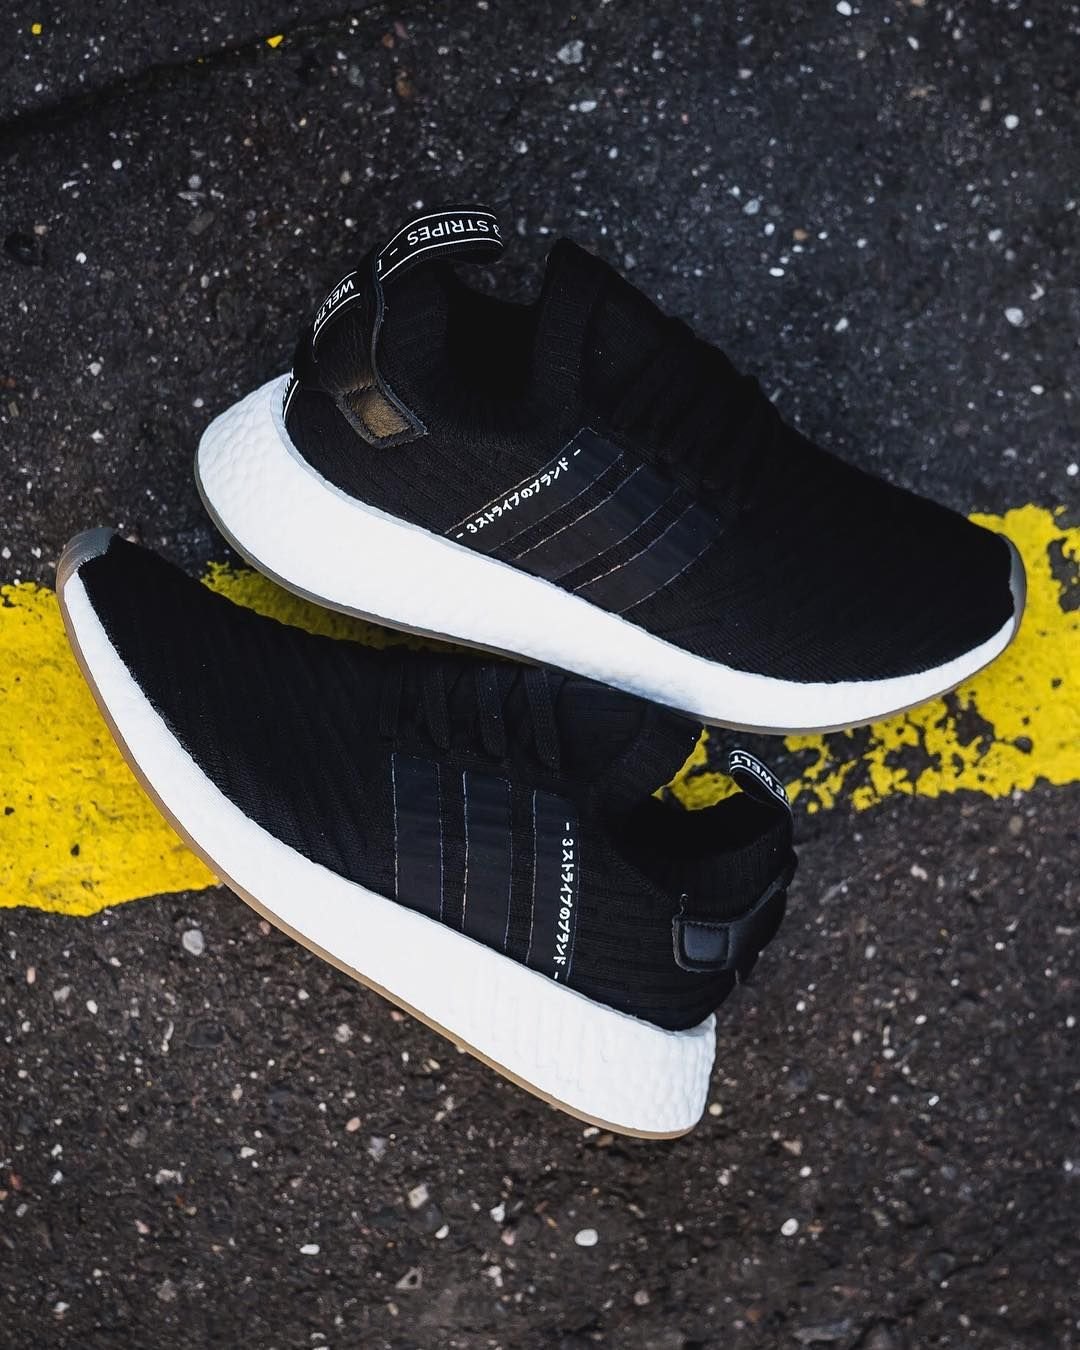 109362adf5b51 adidas NMD R2 PK Japan Core Black avaliable in store and soon online at www.